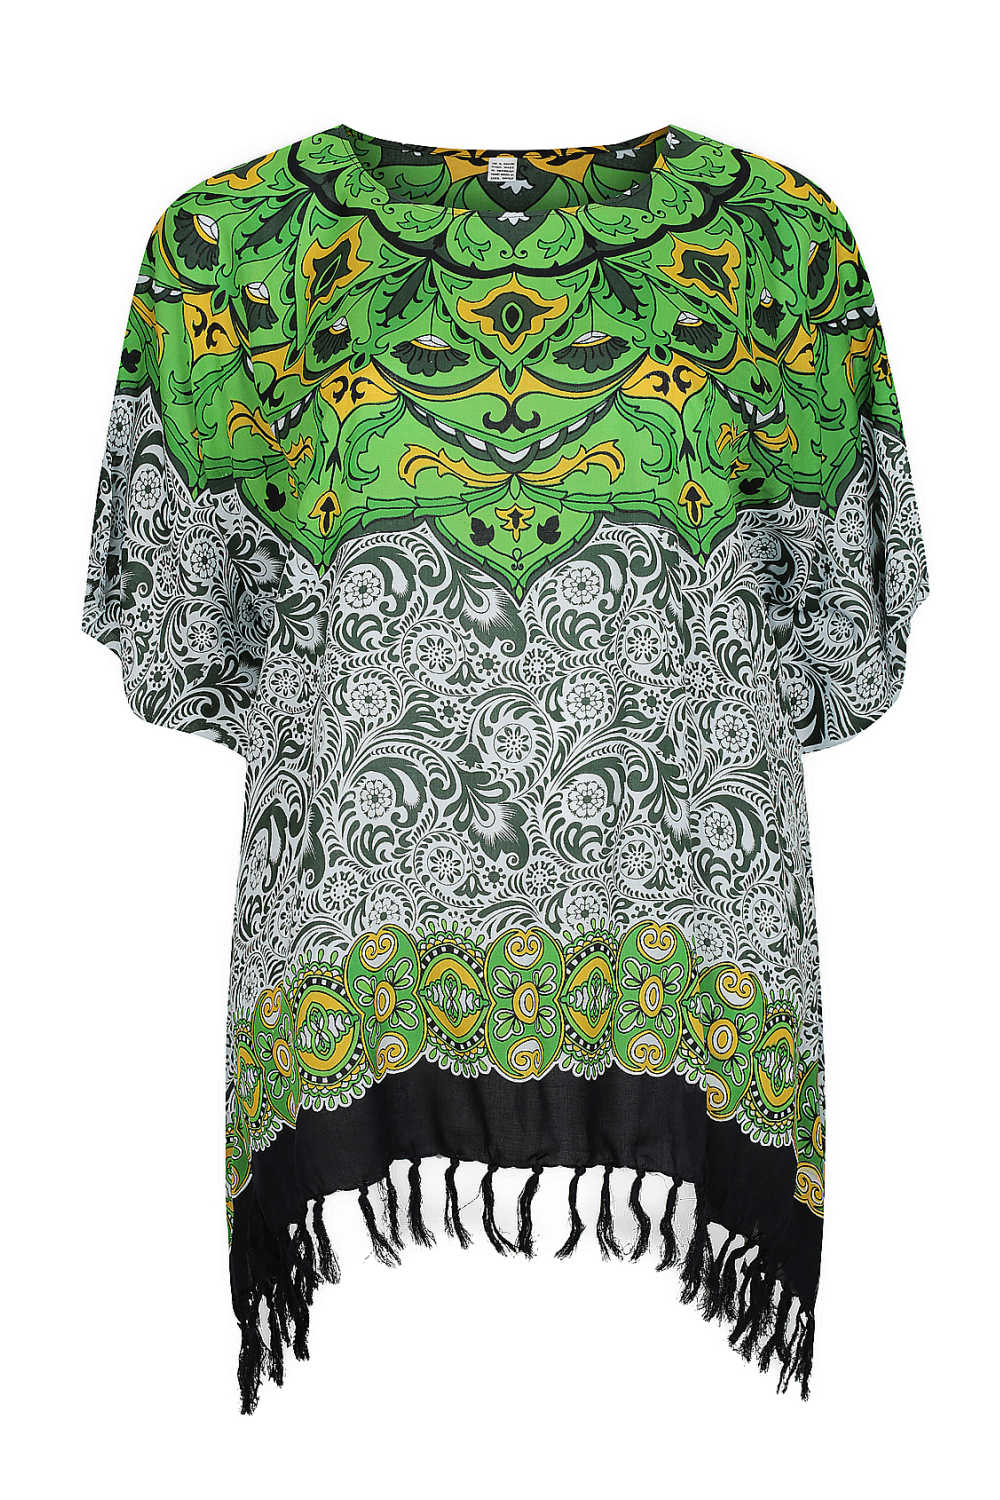 plus-size-kaftan-top-Mandala-design-green-white-black